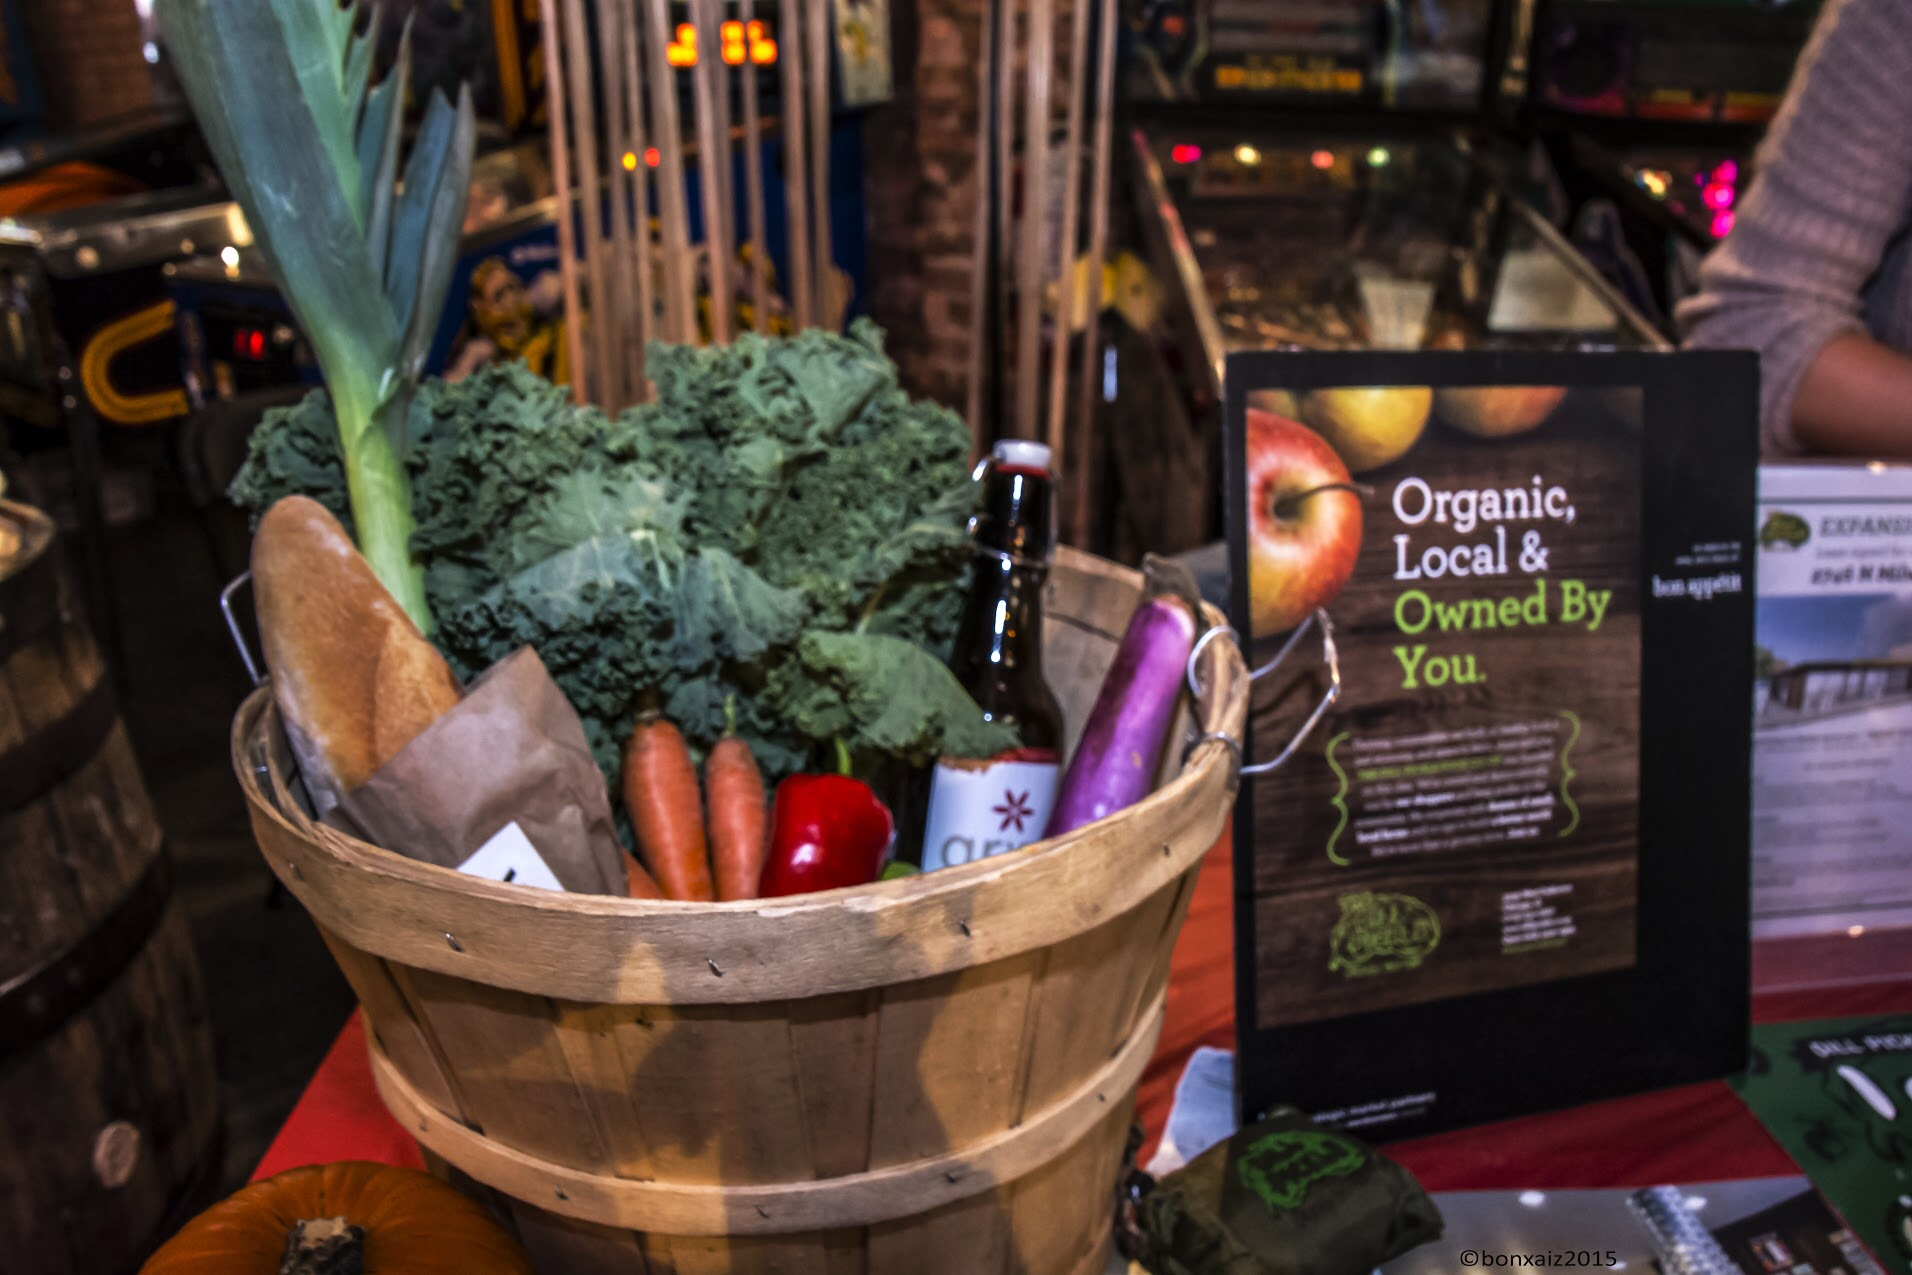 Display of local vegetables and foodstuffs from Dill Pickle Cooperative, a co-op based in Logan Square.Photo credit: Gen Odon